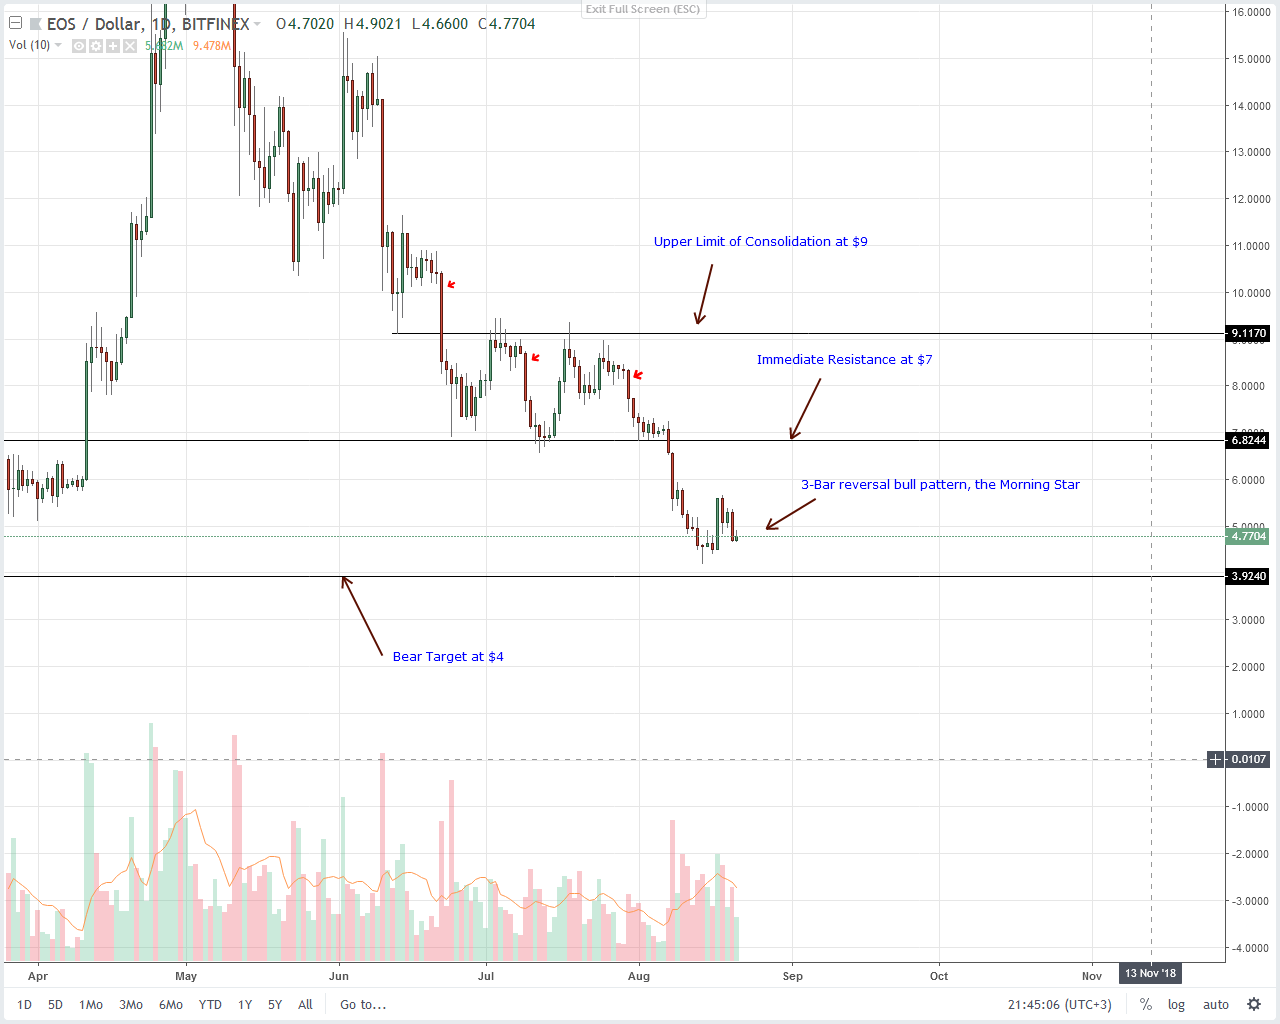 EOS Daily Chart Aug 22